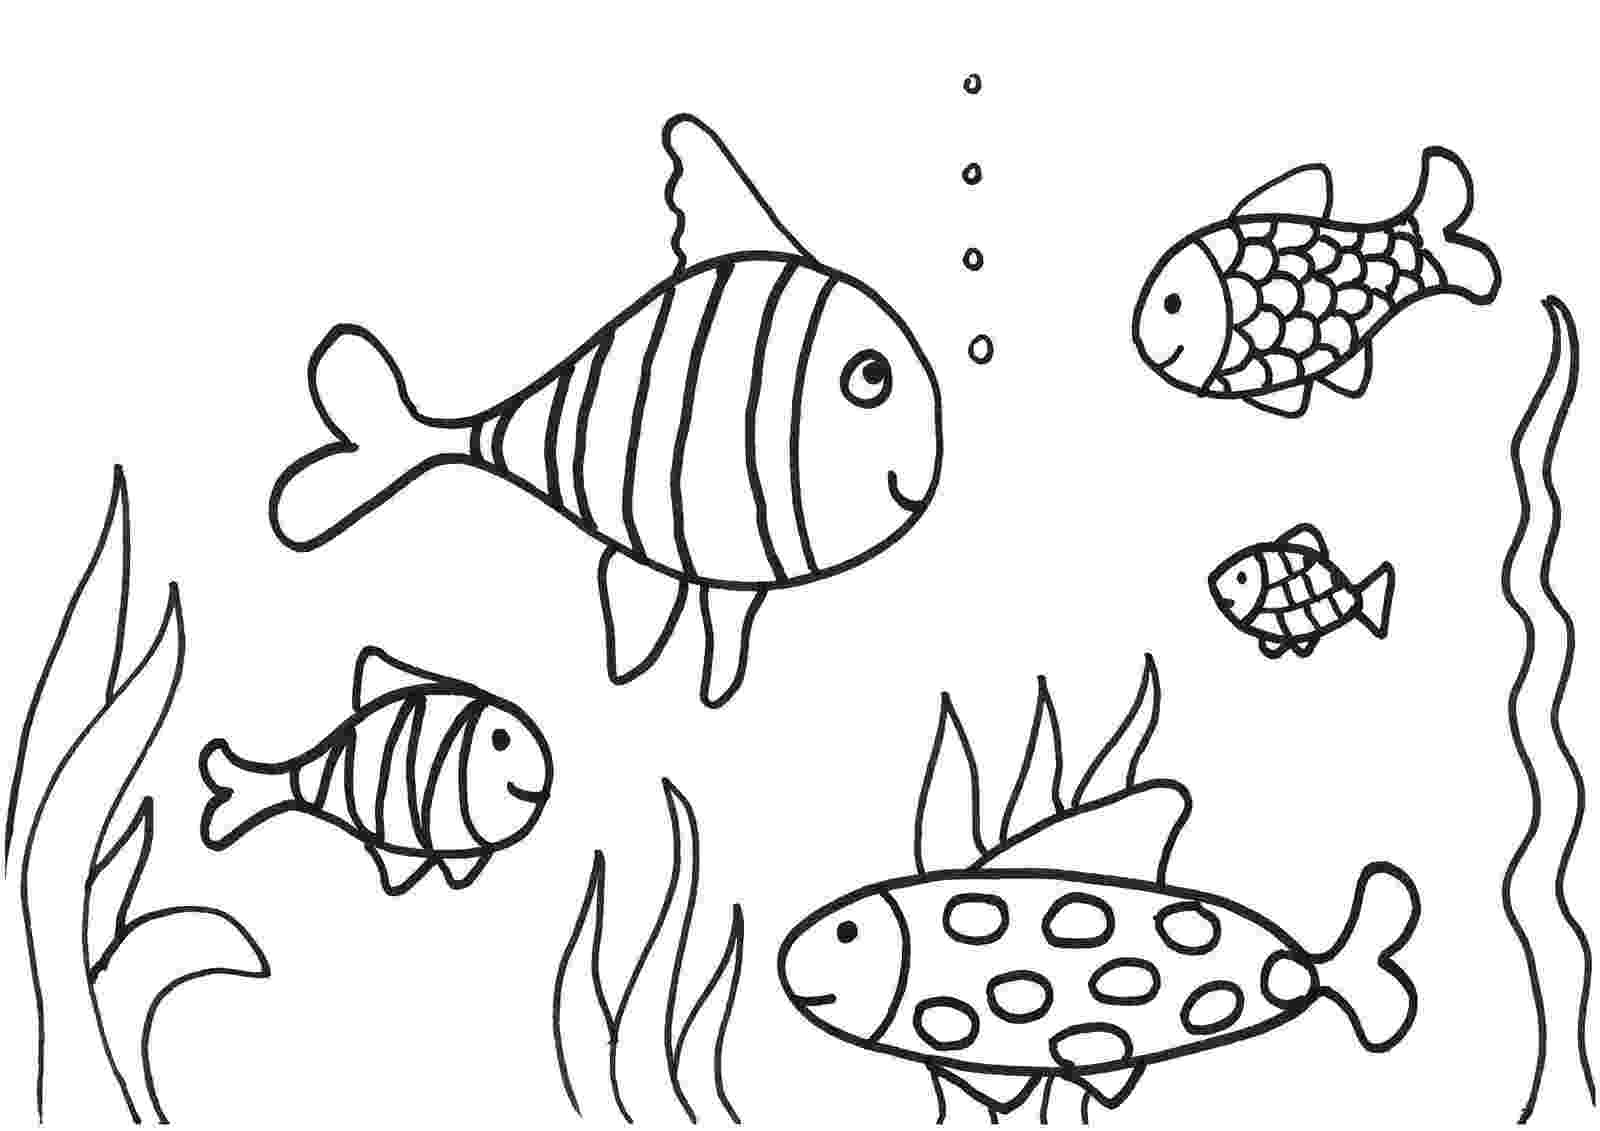 fish coloring pages to print easy coloring pages easy coloring pages fish coloring coloring to fish pages print